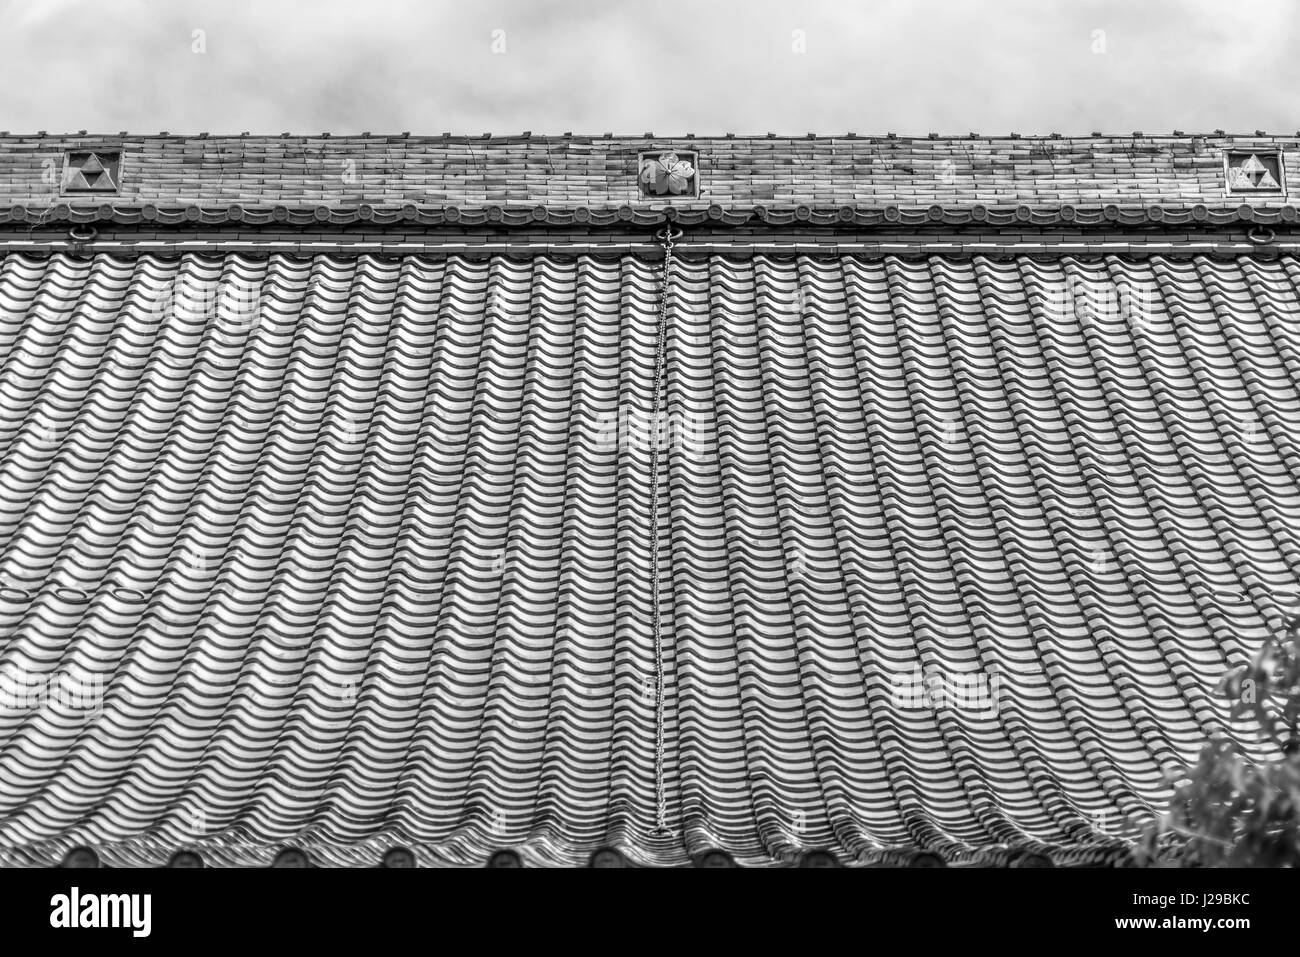 Traditional roof of Hokaiji Temple, also called Hagidera or 'bush-clover temple' Built in 1237. Located - Stock Image